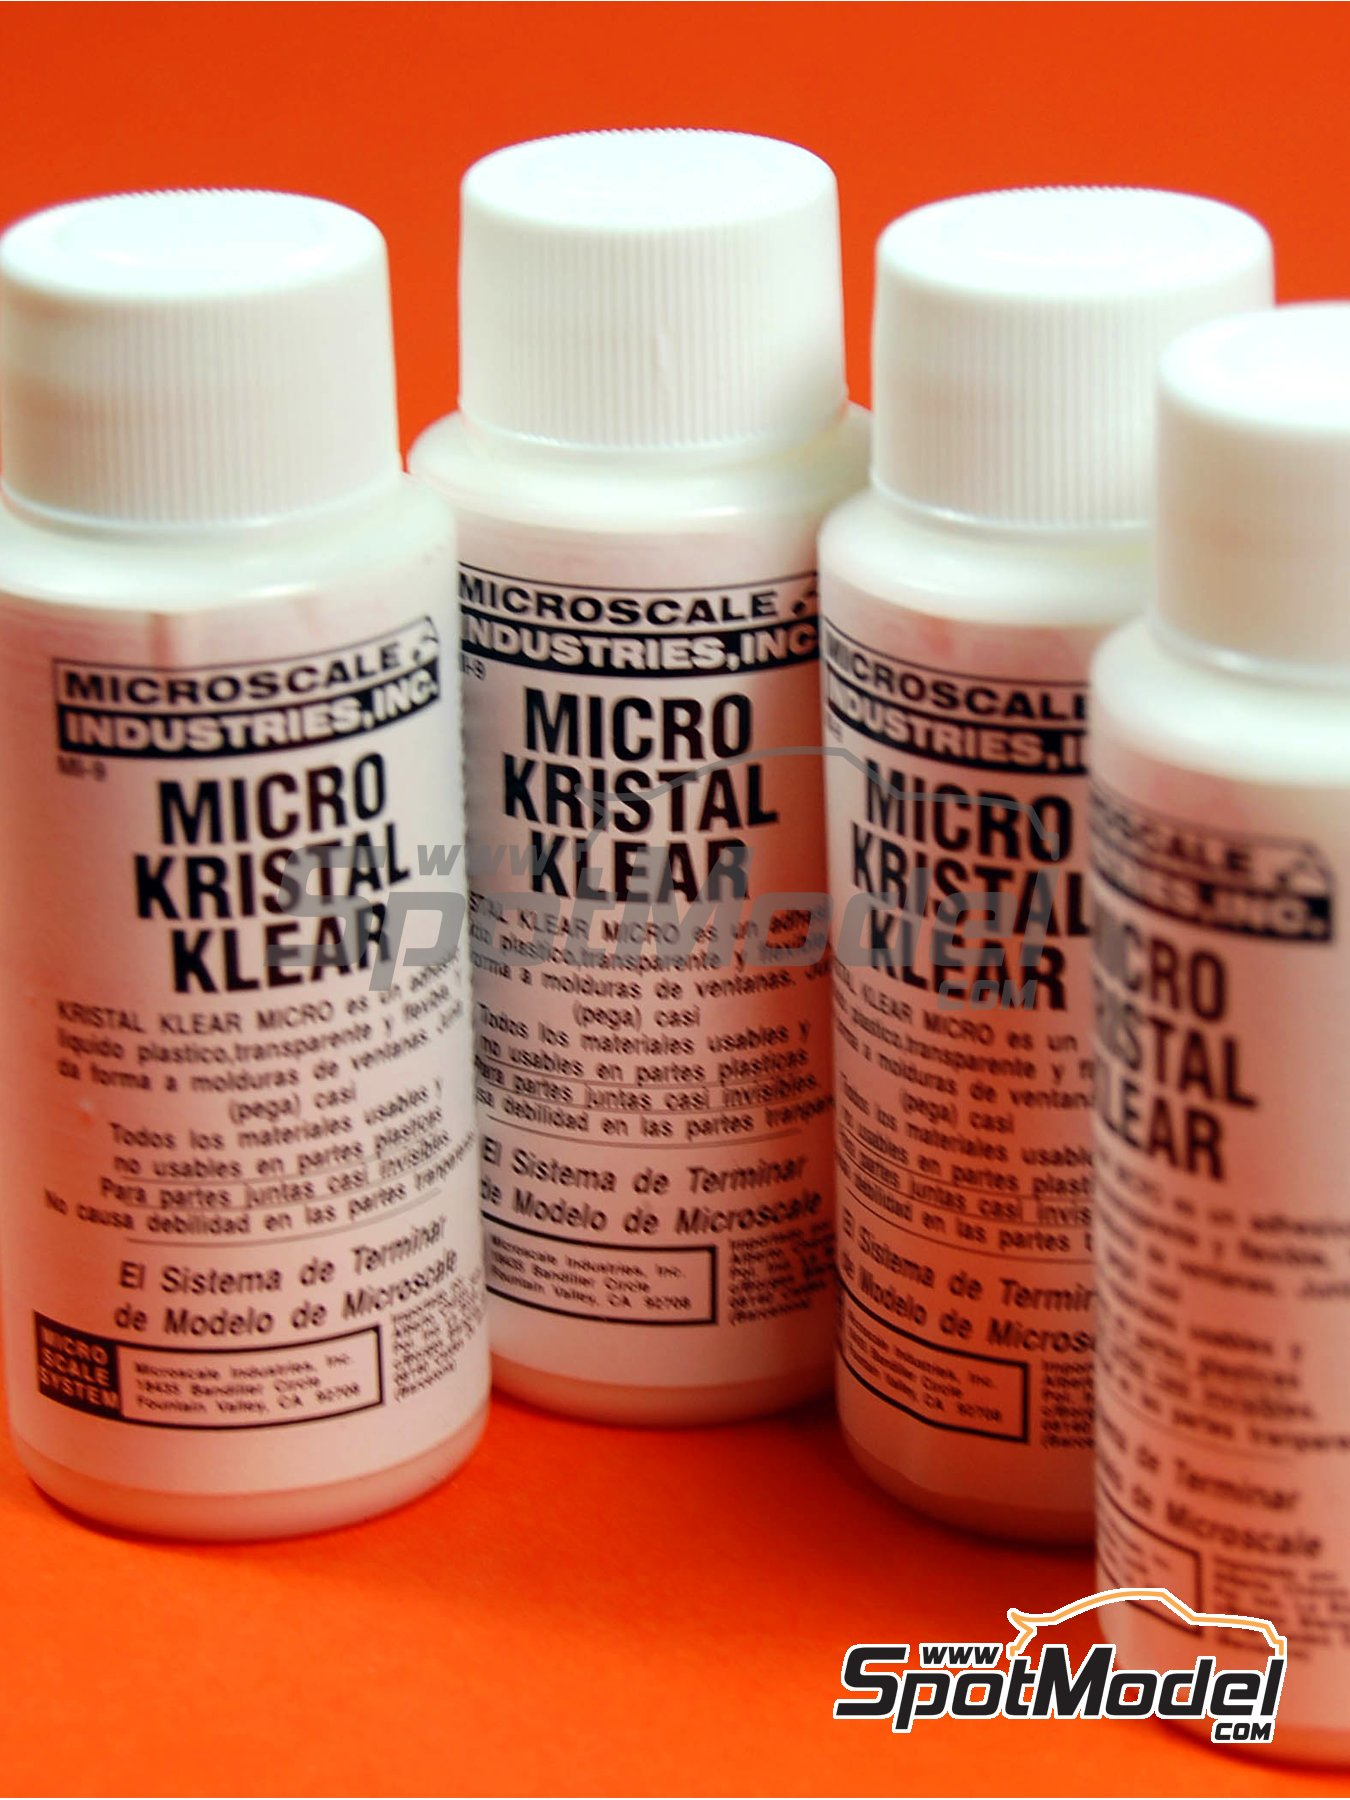 Micro Kristal Clear | Glue manufactured by Microscale (ref. MI-9) image